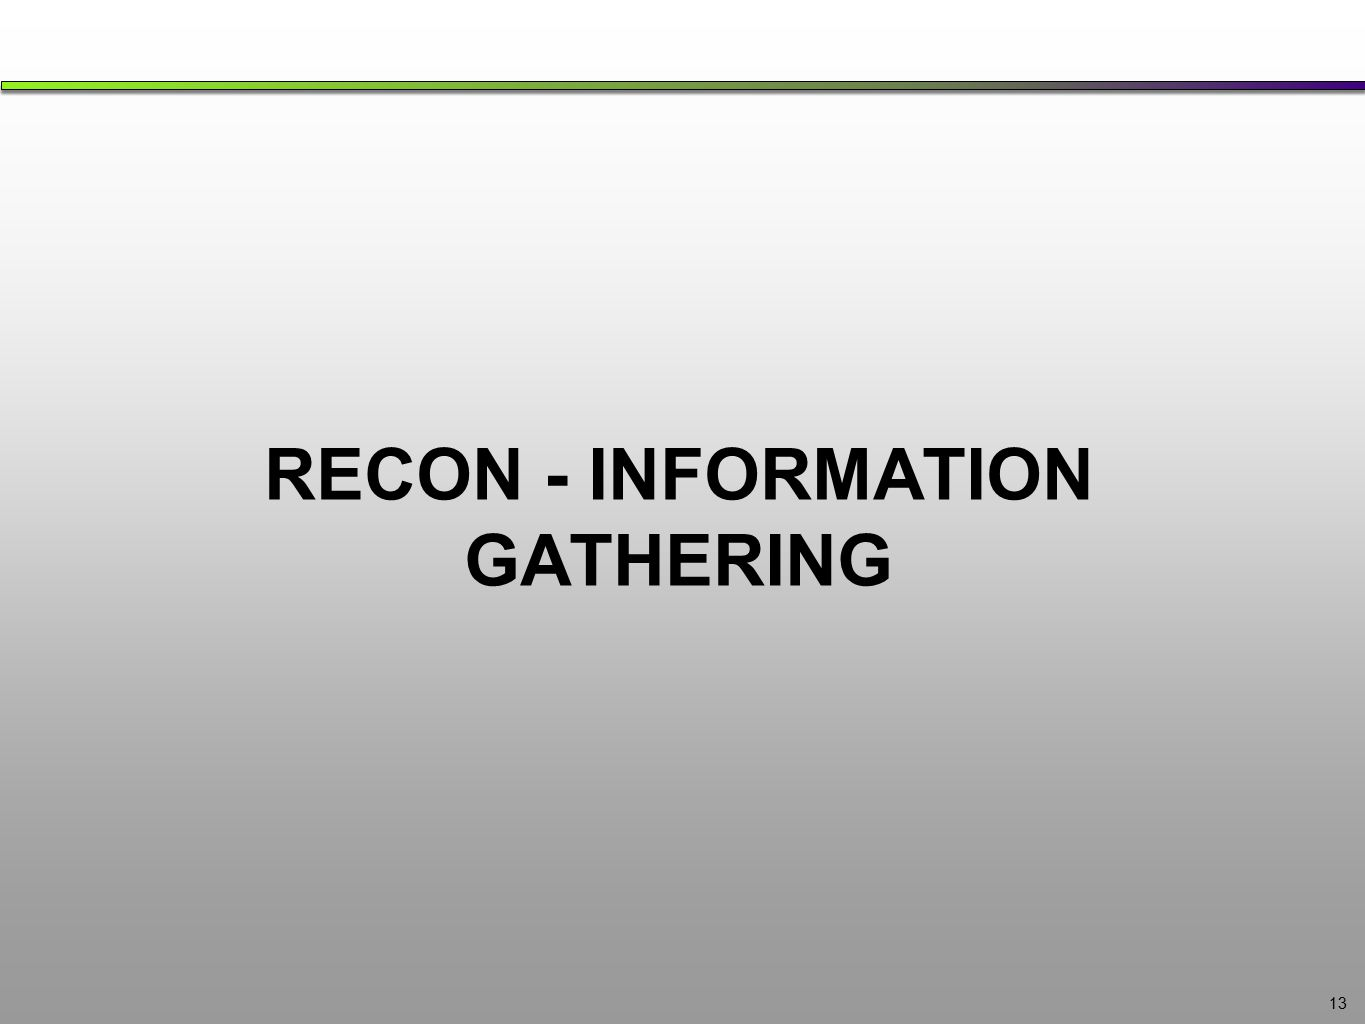 RECON - INFORMATION GATHERING